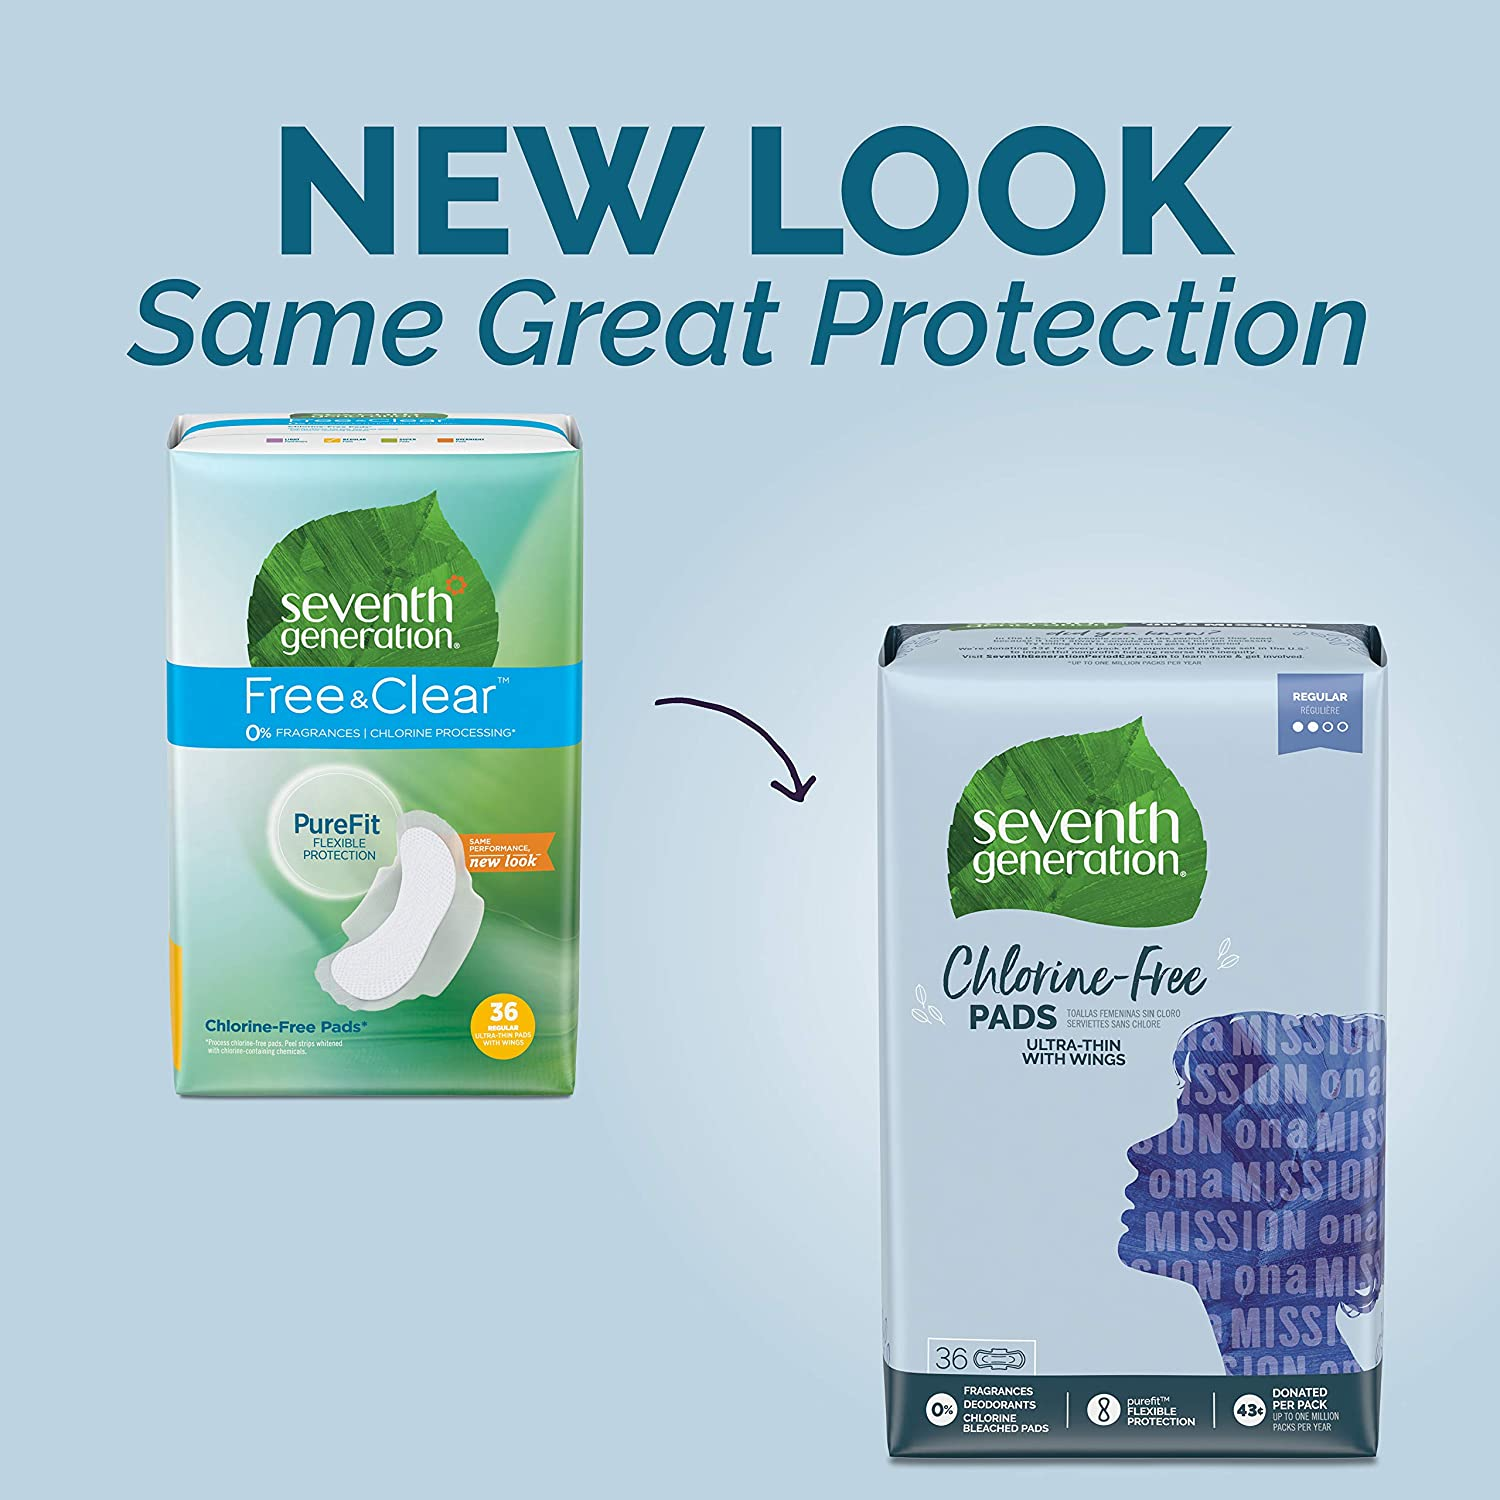 Seventh Generation Ultra Thin Pads with Wings, Regular Absorbency, Chlorine Free, 36 Count (Packaging May Vary): Health & Personal Care